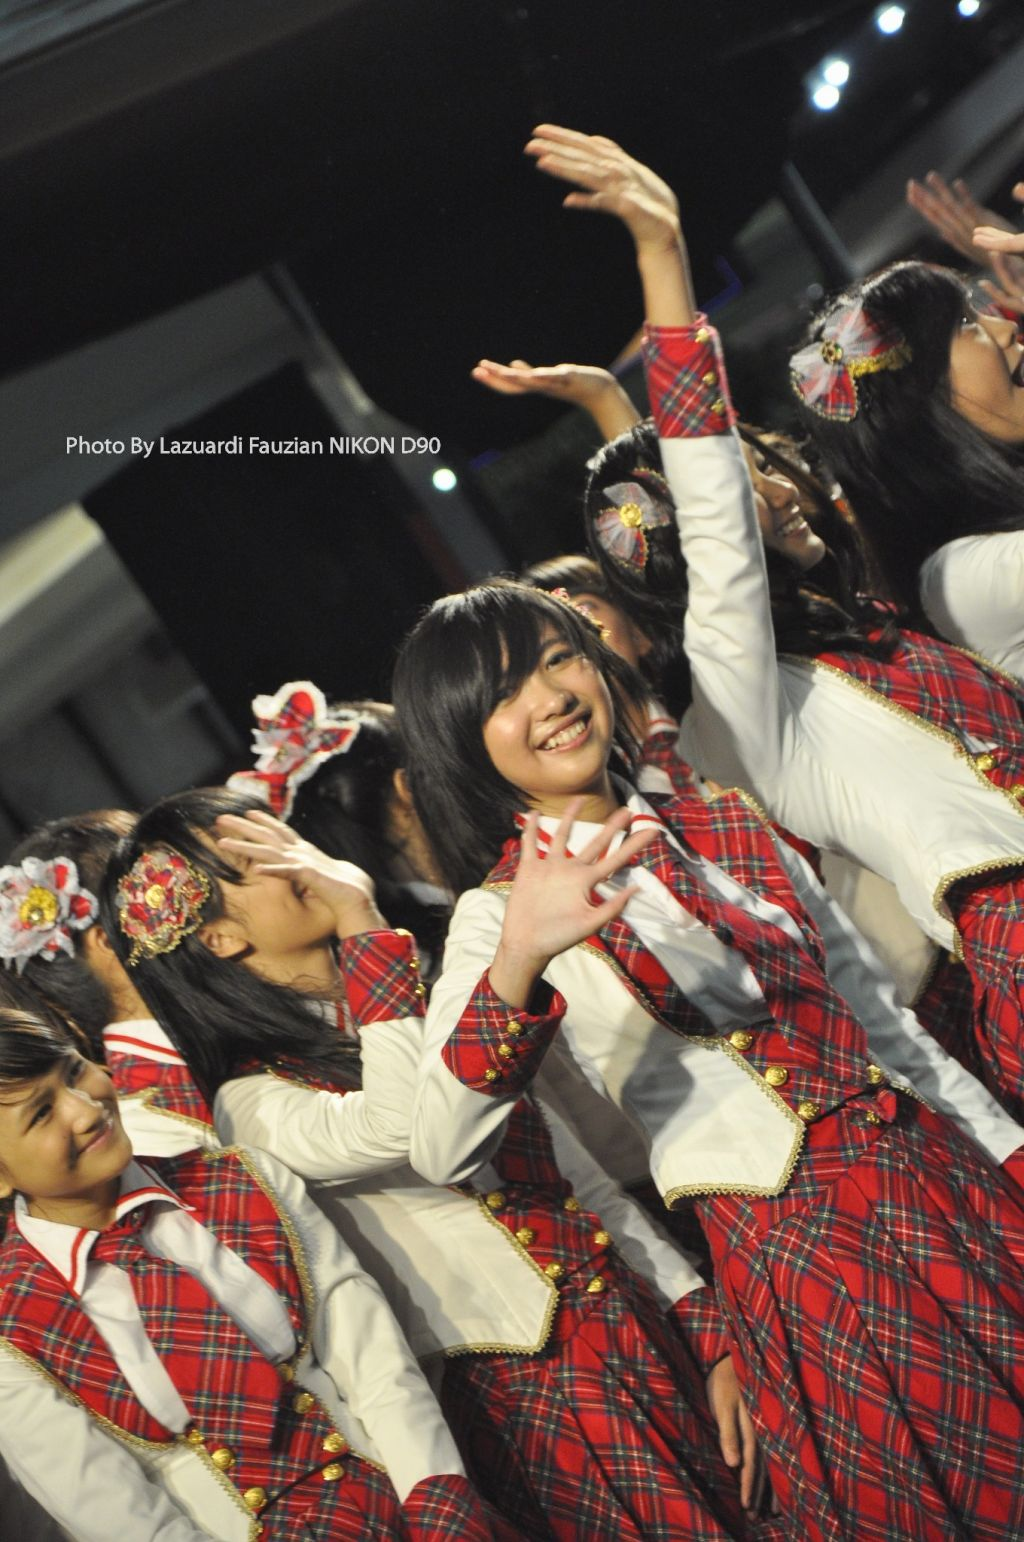 Ghaida JKT48 at launching MV heavy rotation